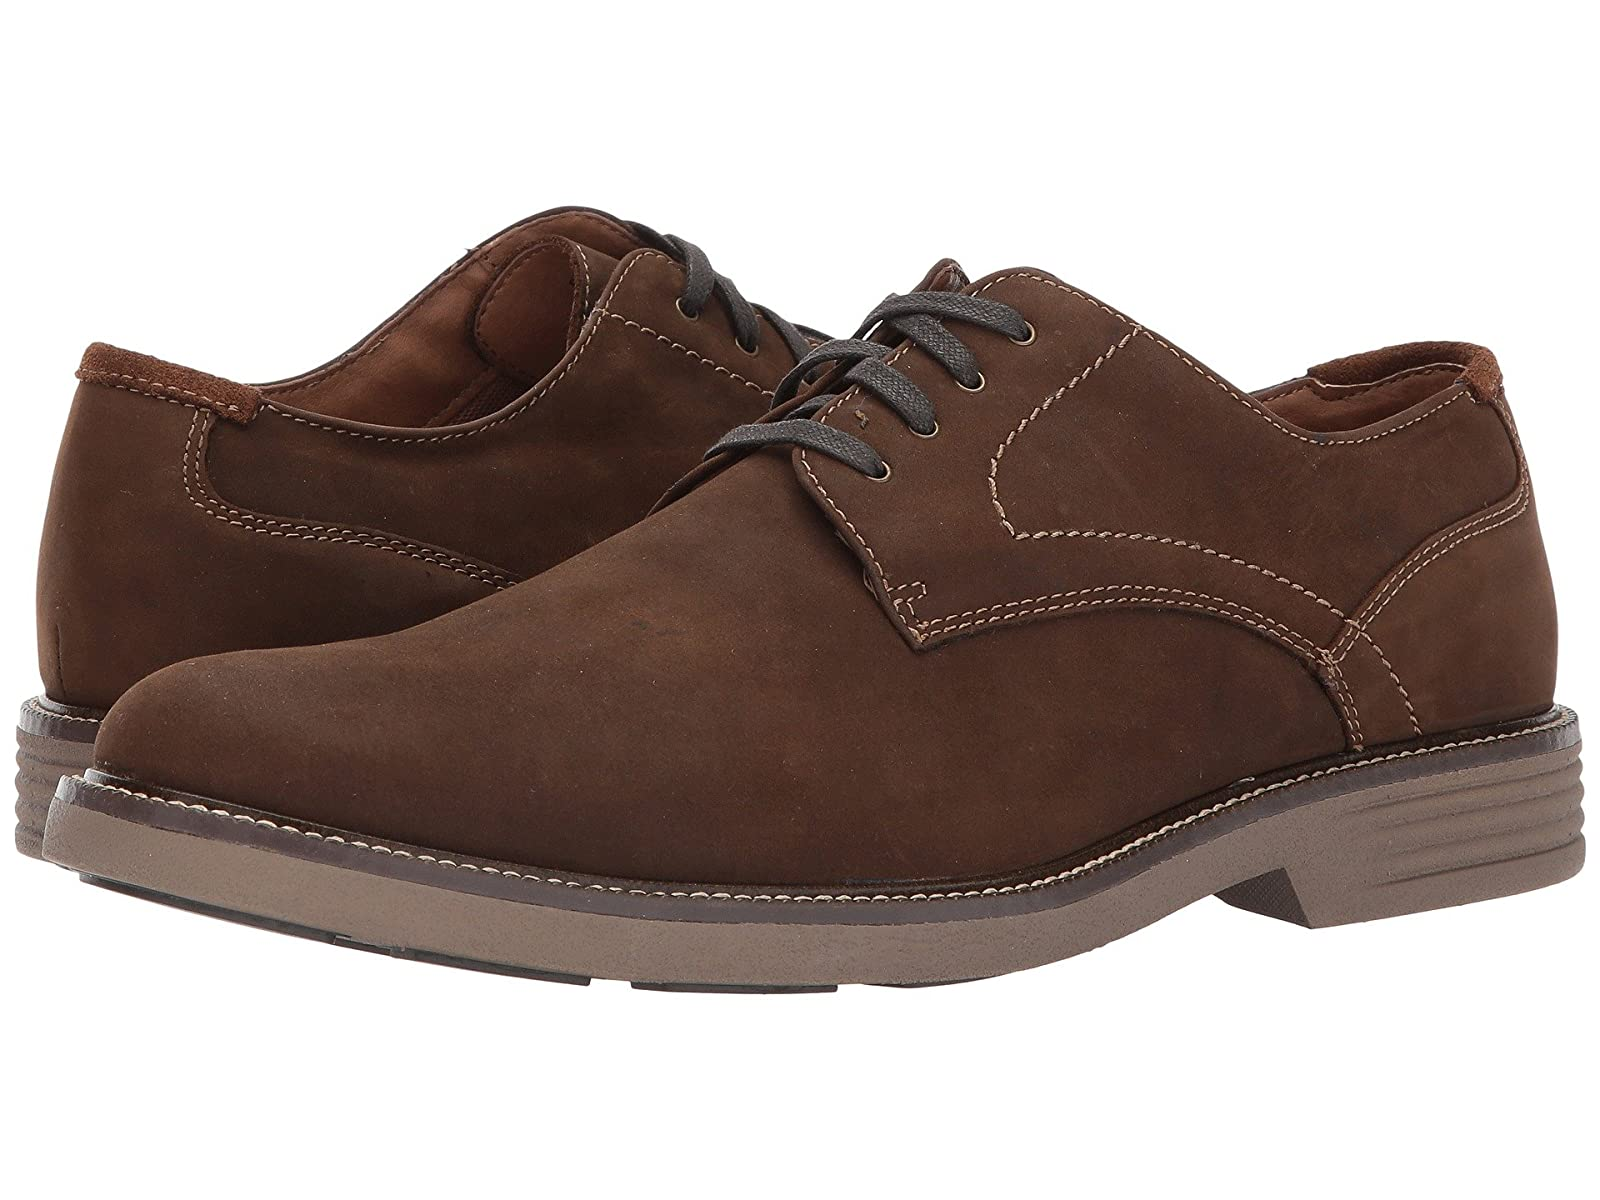 Dockers Parkway Plain Toe OxfordAtmospheric grades have affordable shoes